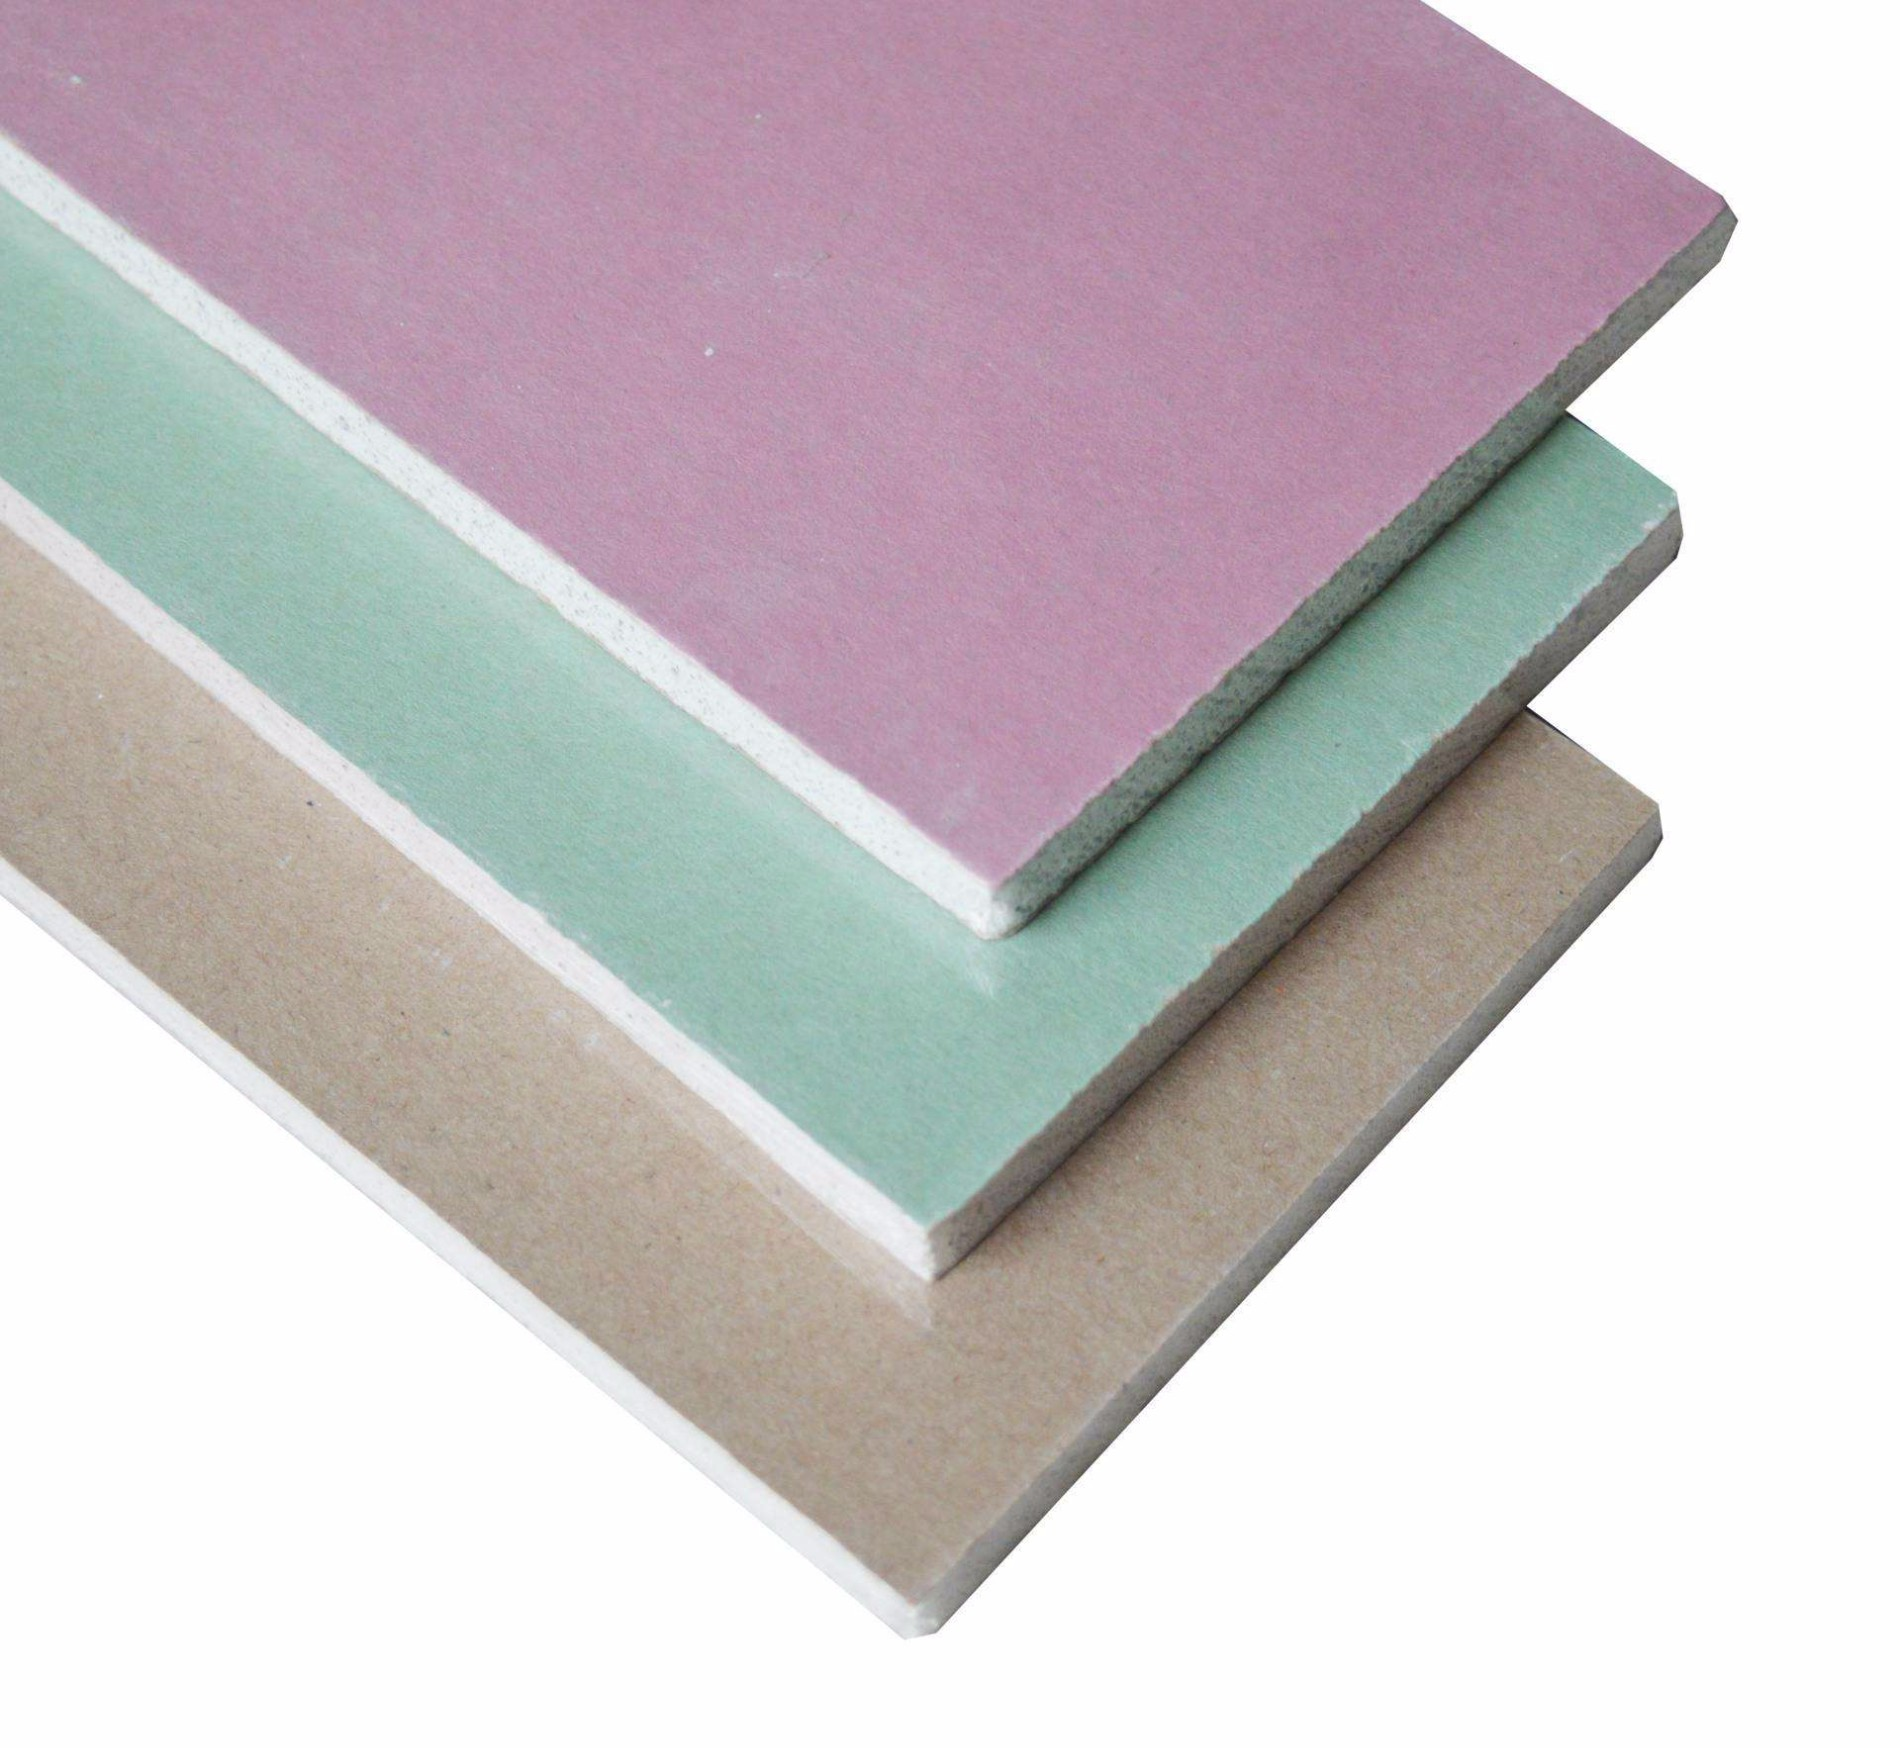 ceiling linings includes standard plasterboard, fire, water, impact and sound resistant boards.